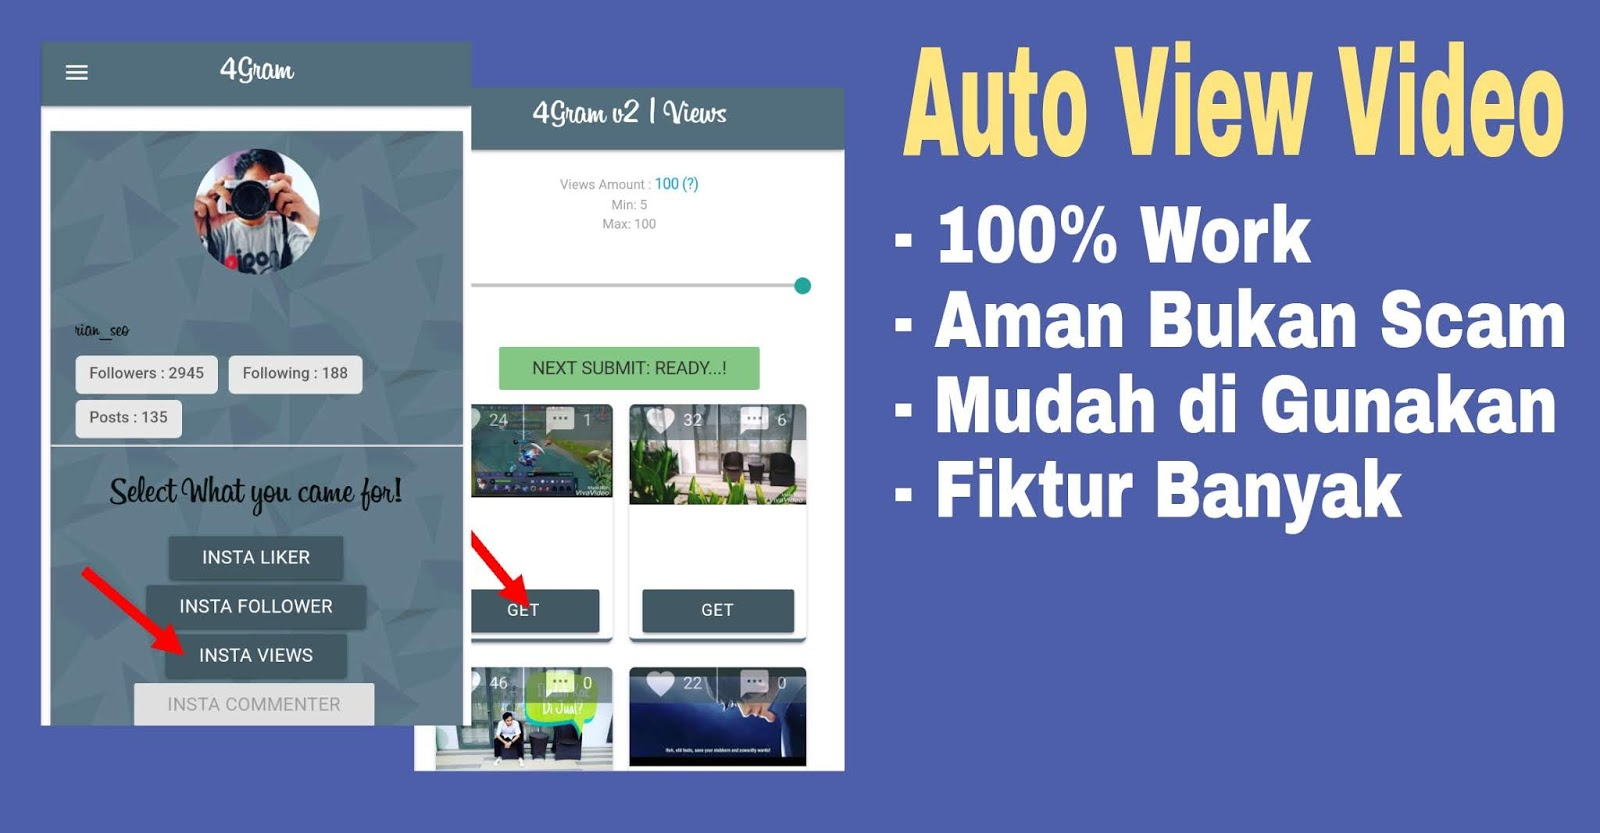 Cara Membuat Auto View Video Instagram Terbaru 2018, 100% Work